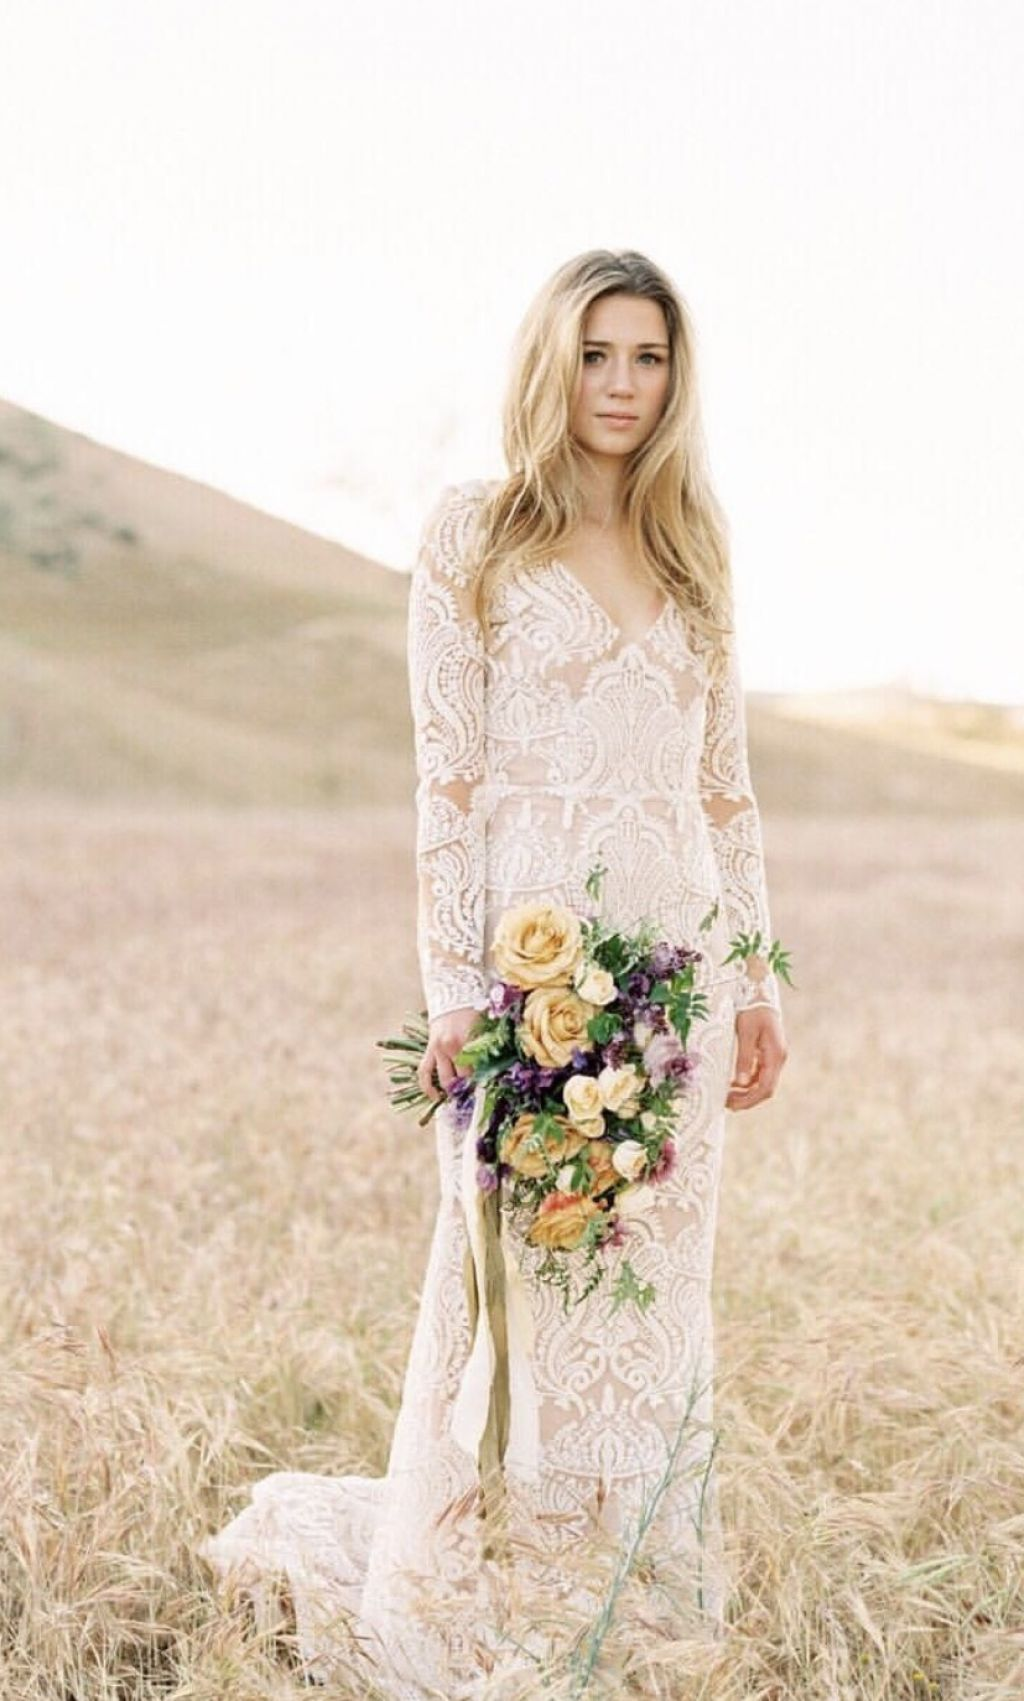 Tara Lauren - Harlow wedding dress